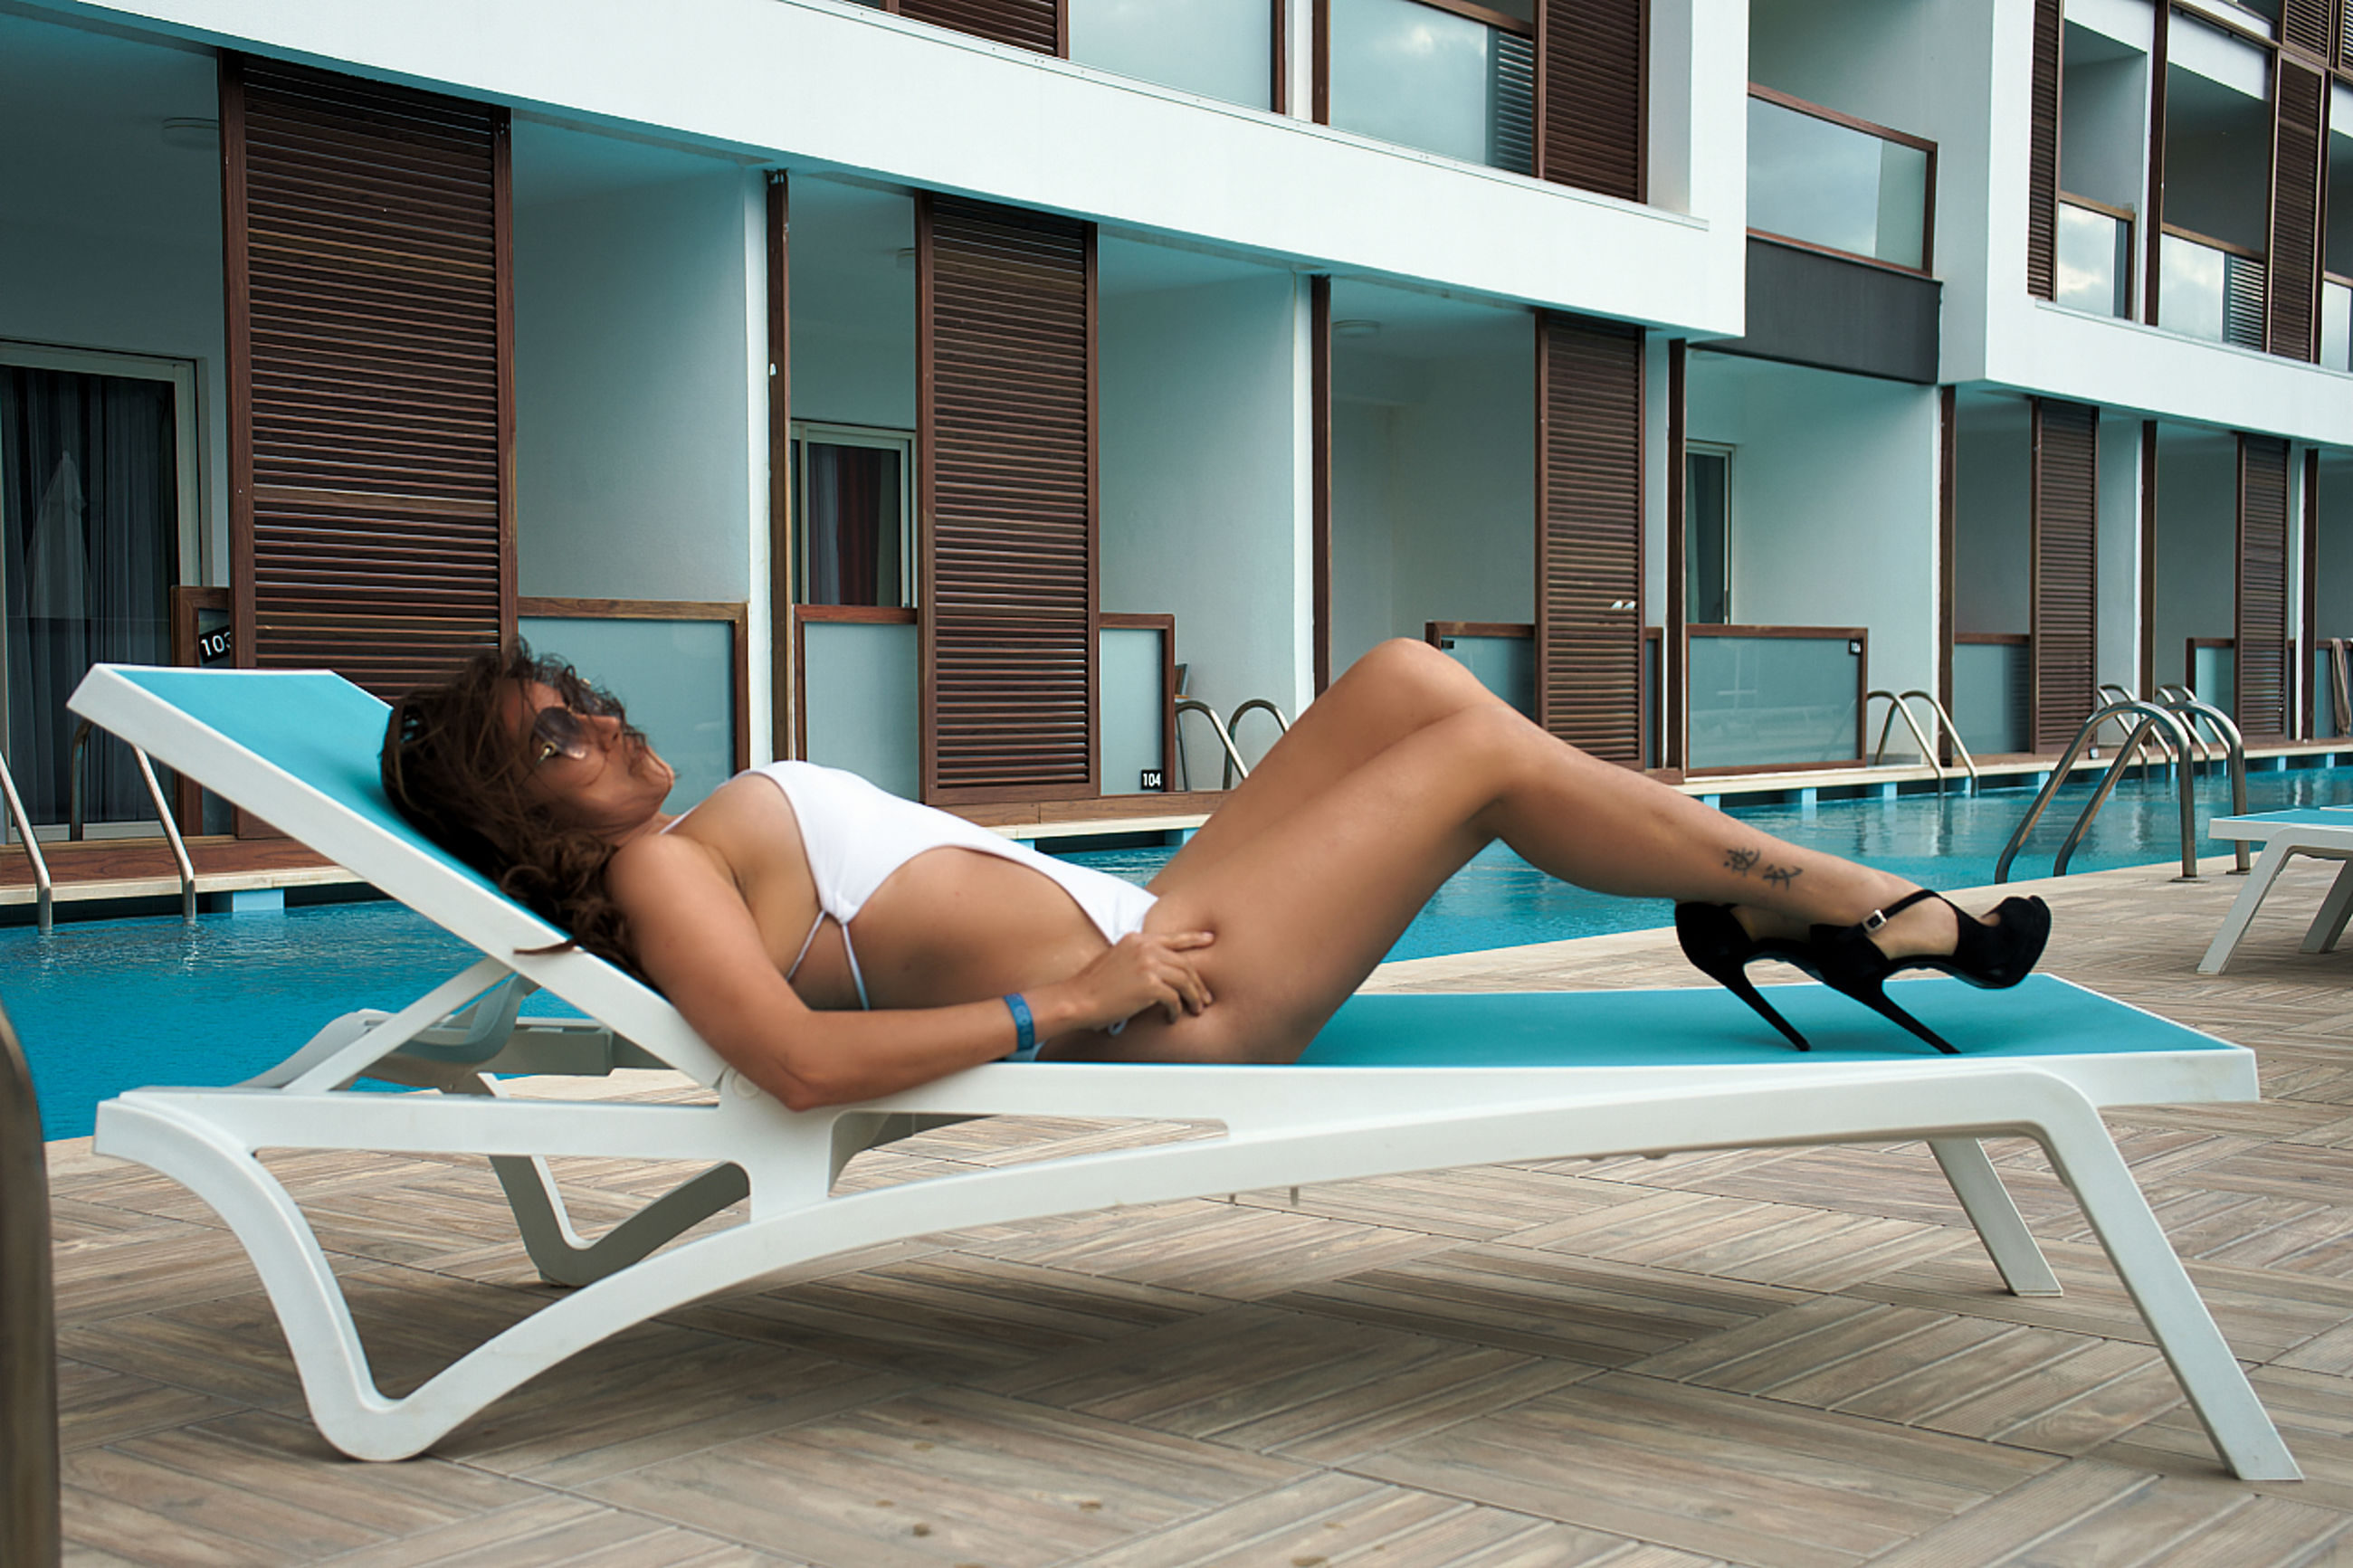 sitting, adult, relaxation, young adult, one person, lifestyles, women, lying down, full length, architecture, wellbeing, limb, clothing, building exterior, summer, swimming pool, human leg, leisure activity, furniture, built structure, female, chair, exercising, sun tanning, swimwear, resting, comfortable, seat, side view, nature, sun, day, outdoors, sunbathing, bikini, city, building, chaise longue, window